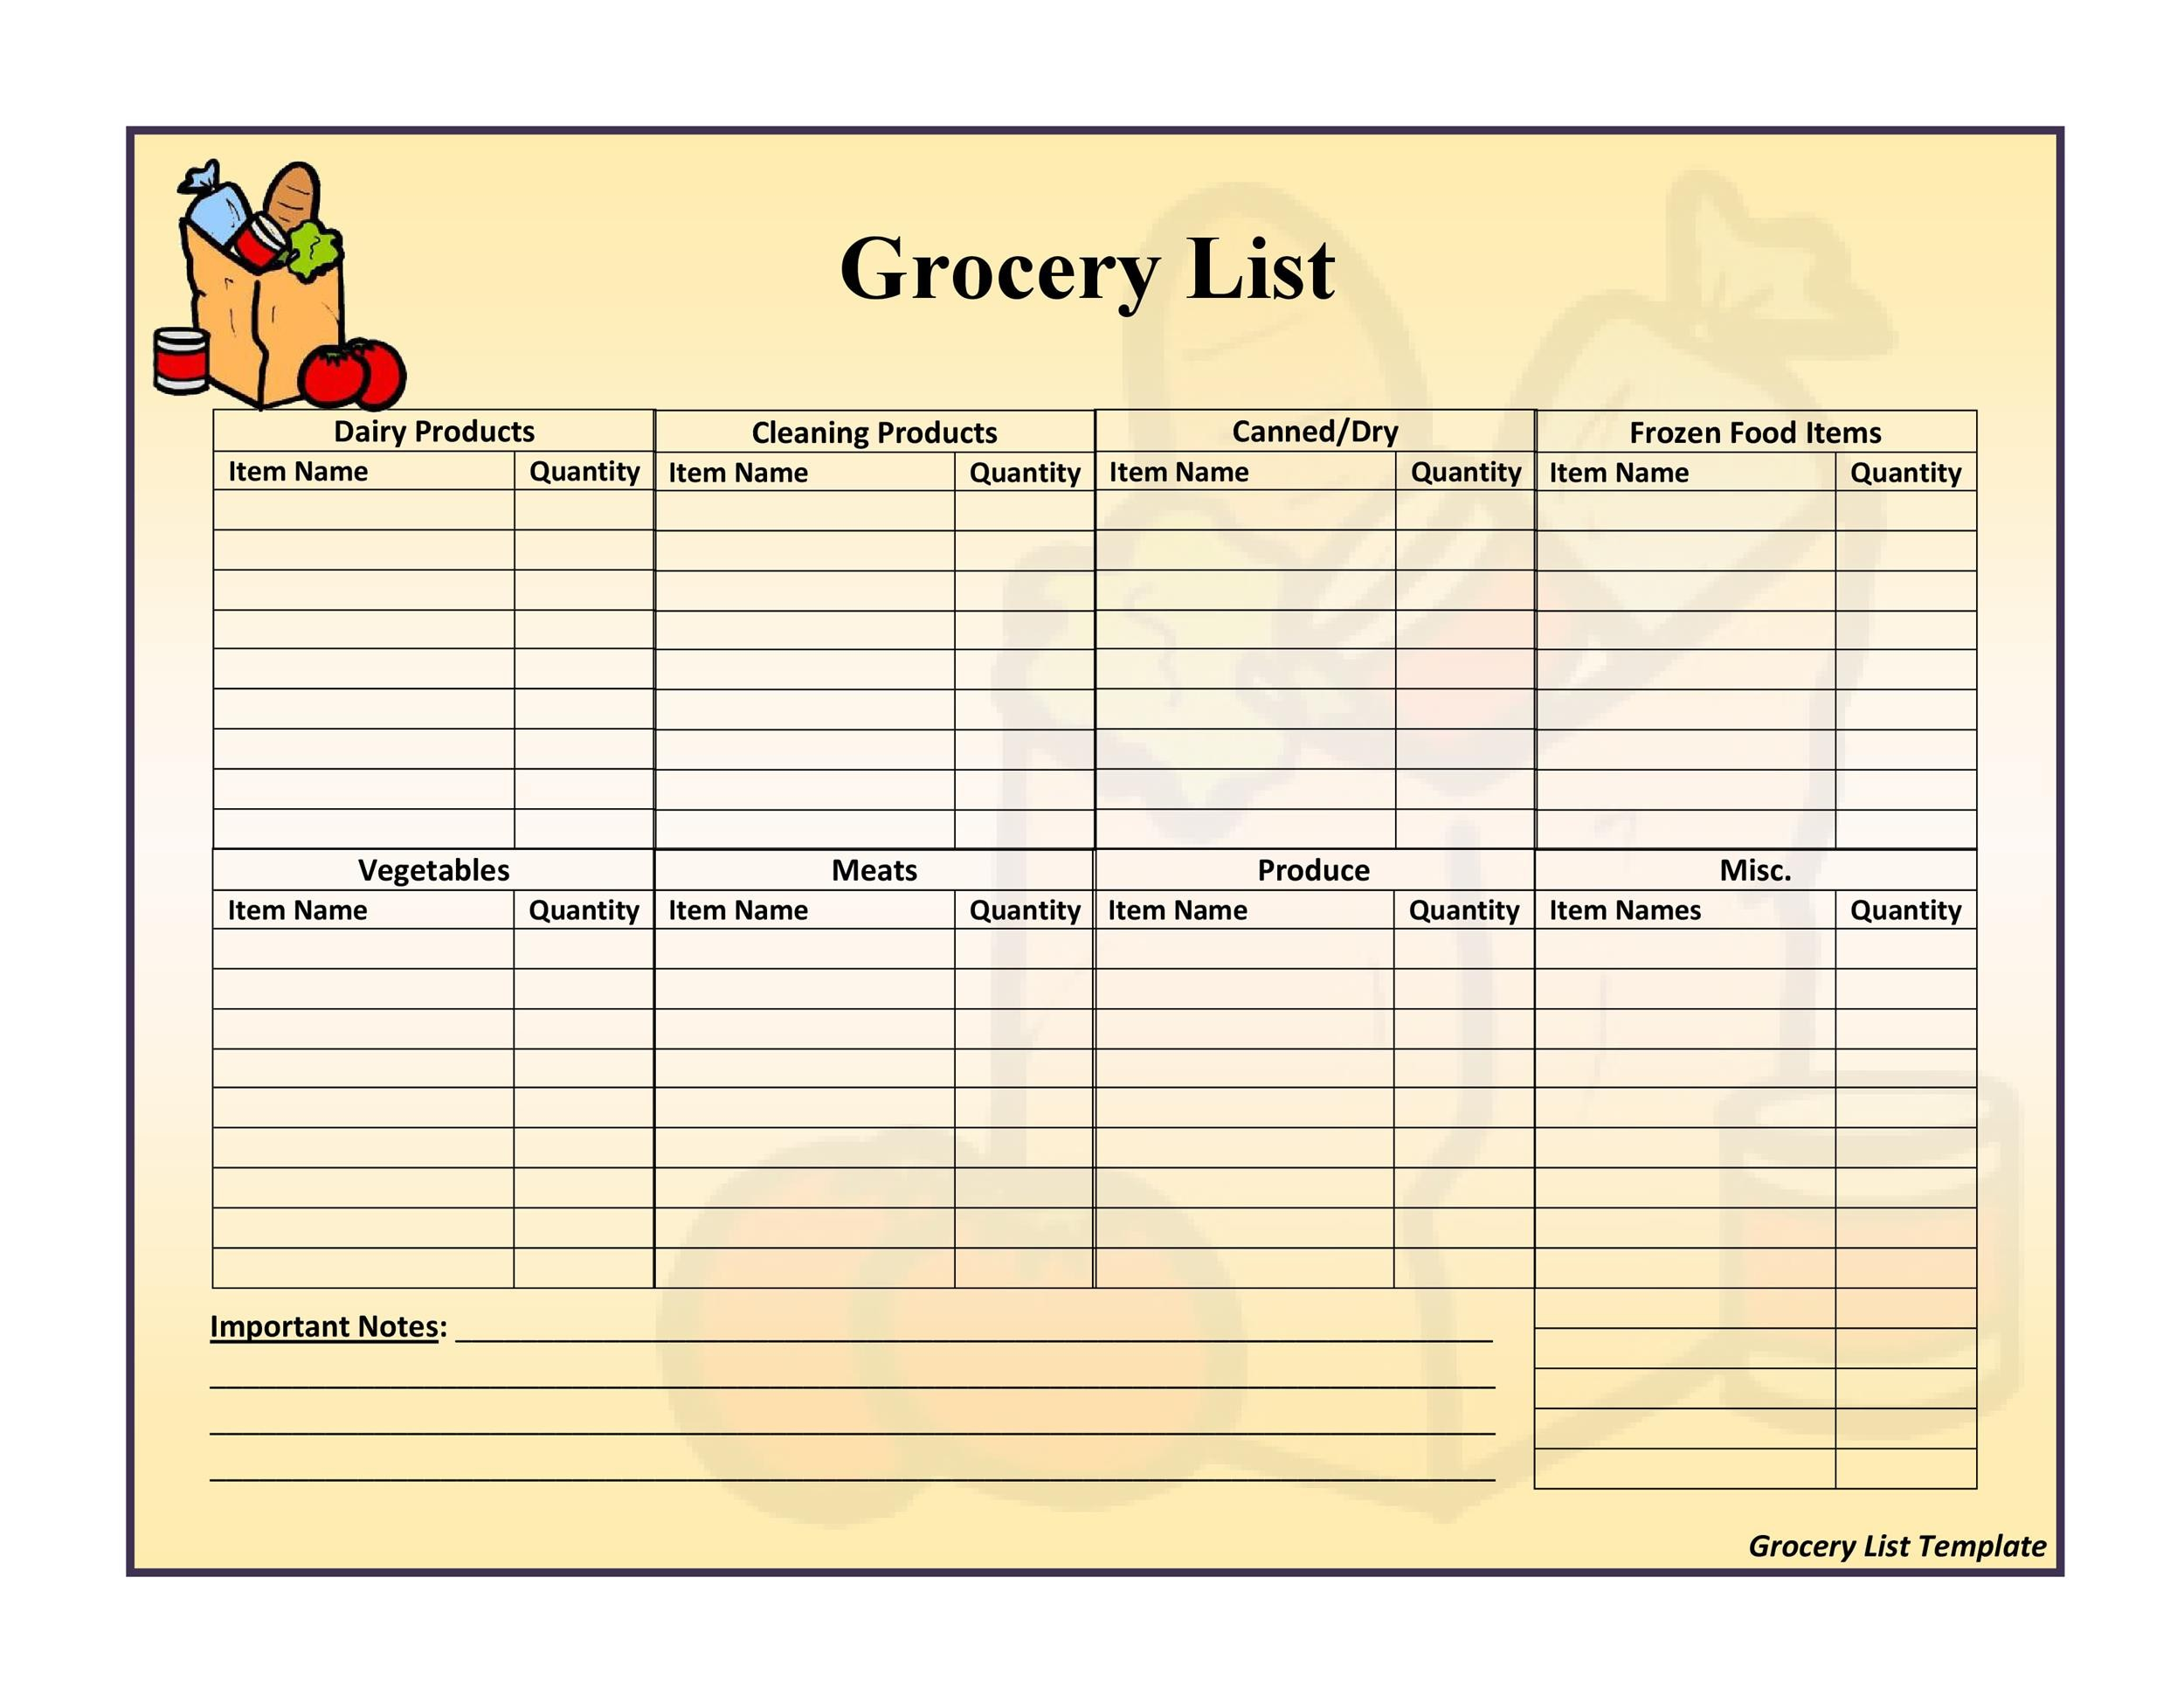 list of groceries items - Sazak mouldings co